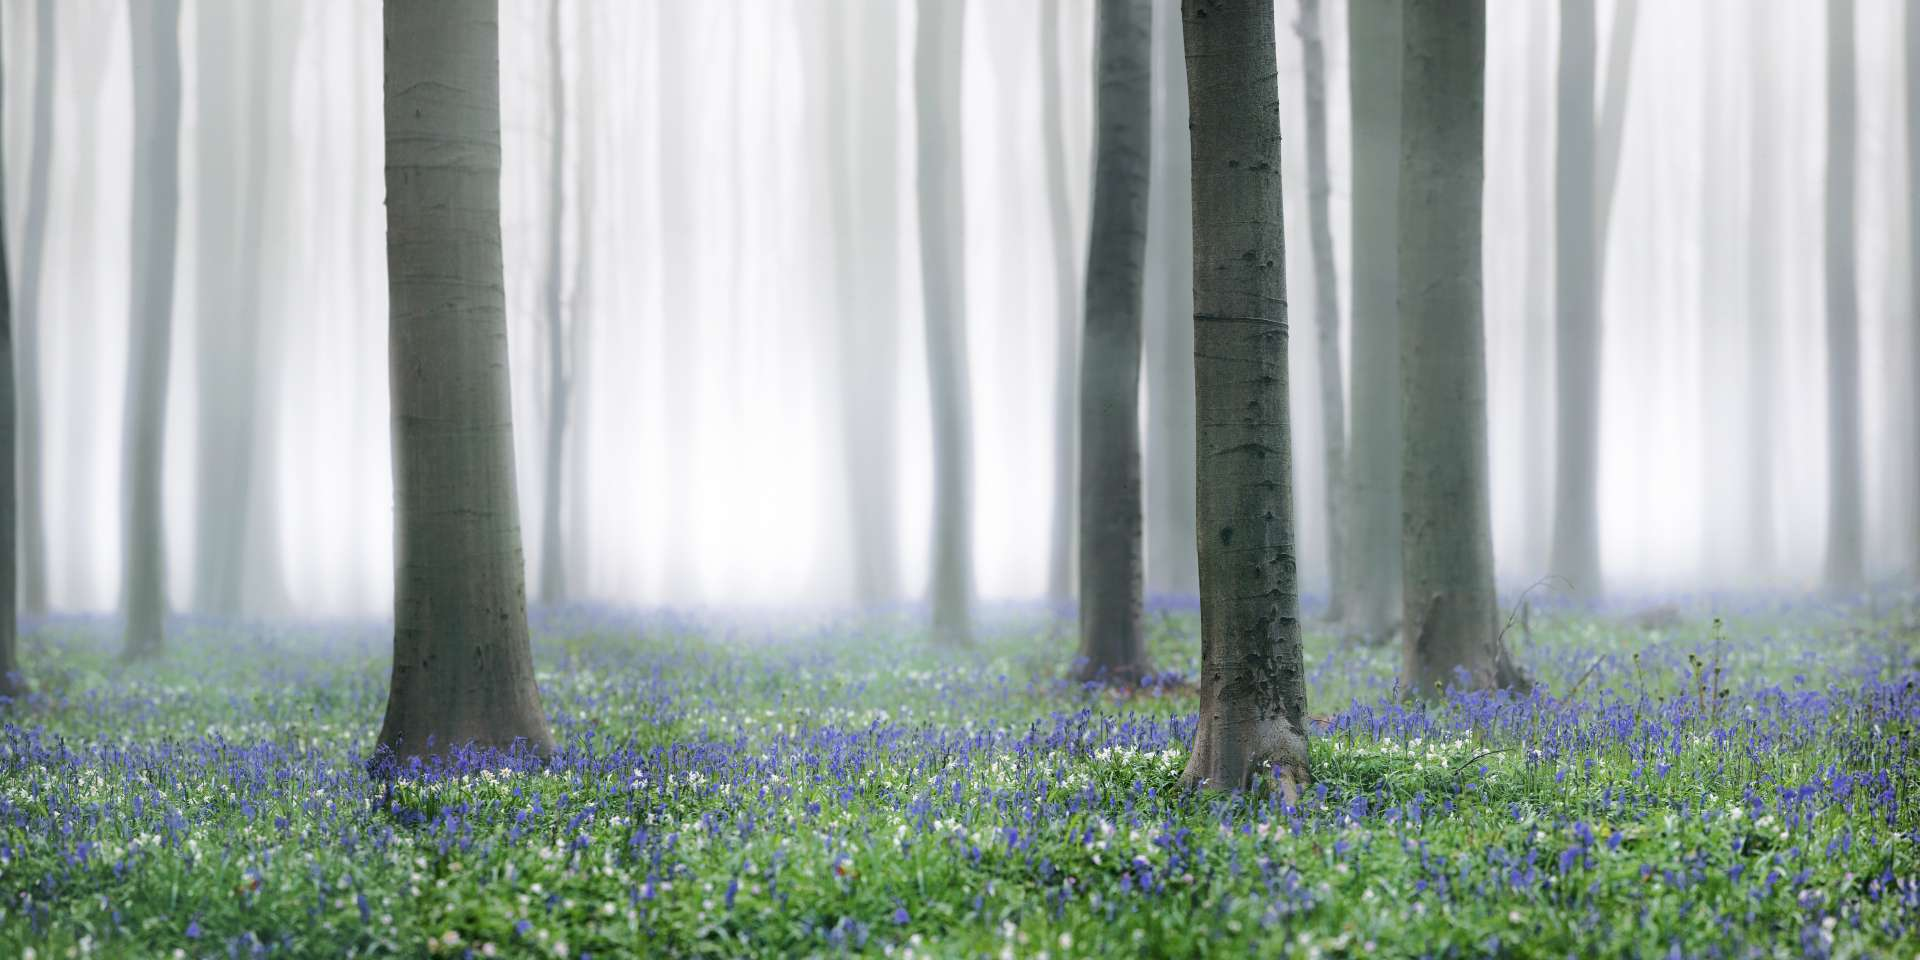 Flowering Bluebells in the Hallerbos | Landscape | Koen De Muynck